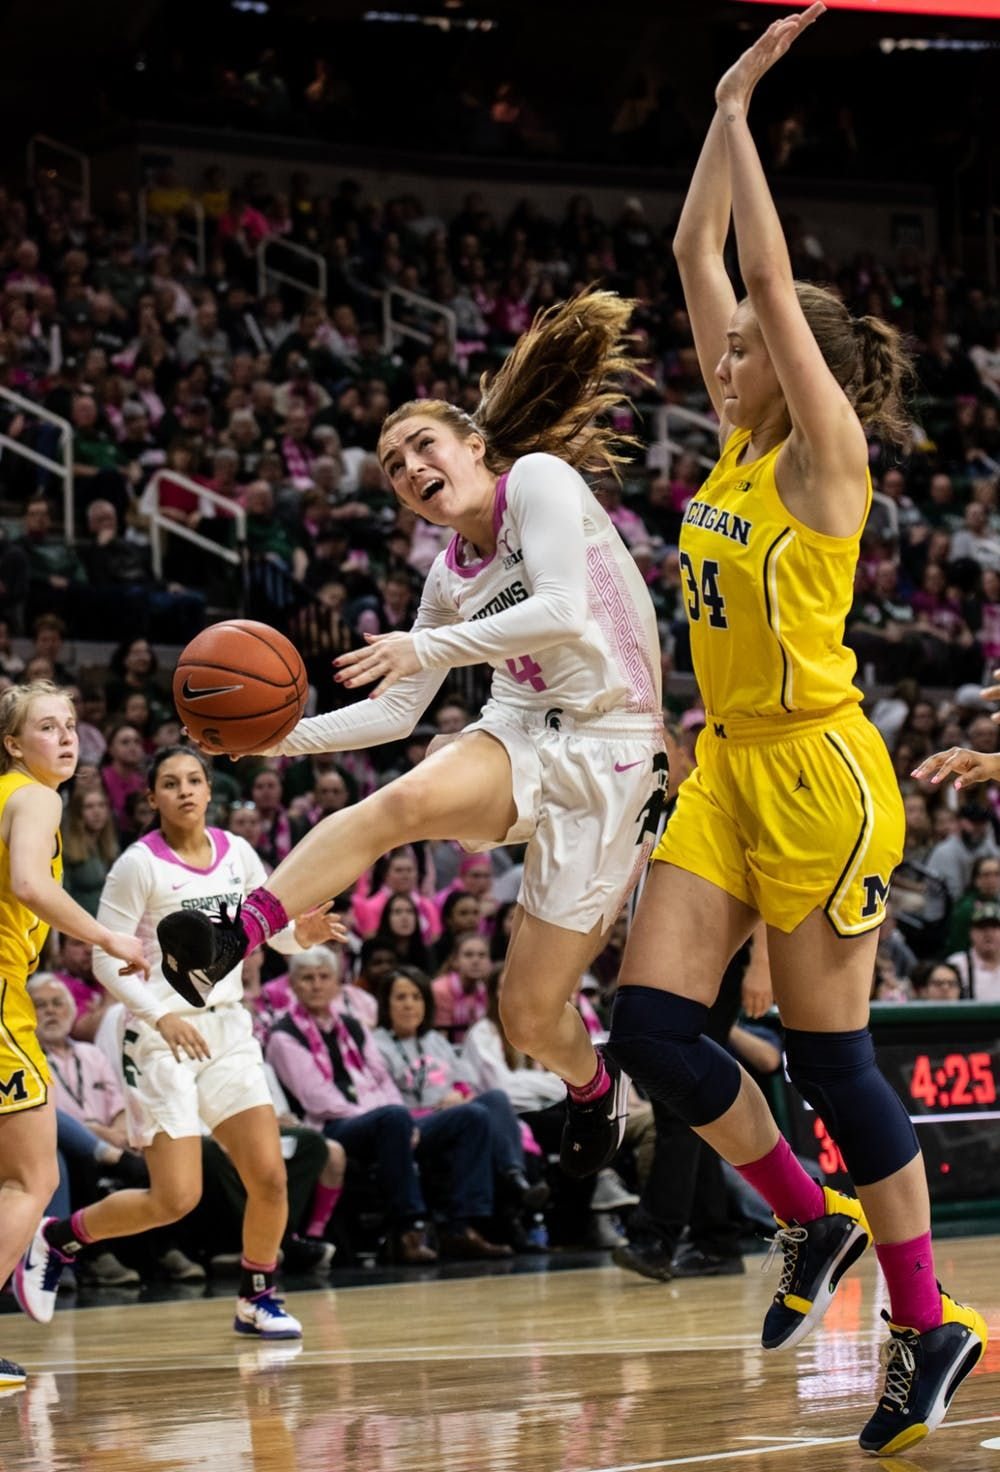 The Tide Has Been Turning Women S Basketball Players Coaches Discuss The Michigan Michigan State Rival In 2020 Womens Basketball Female Athletes Basketball Players